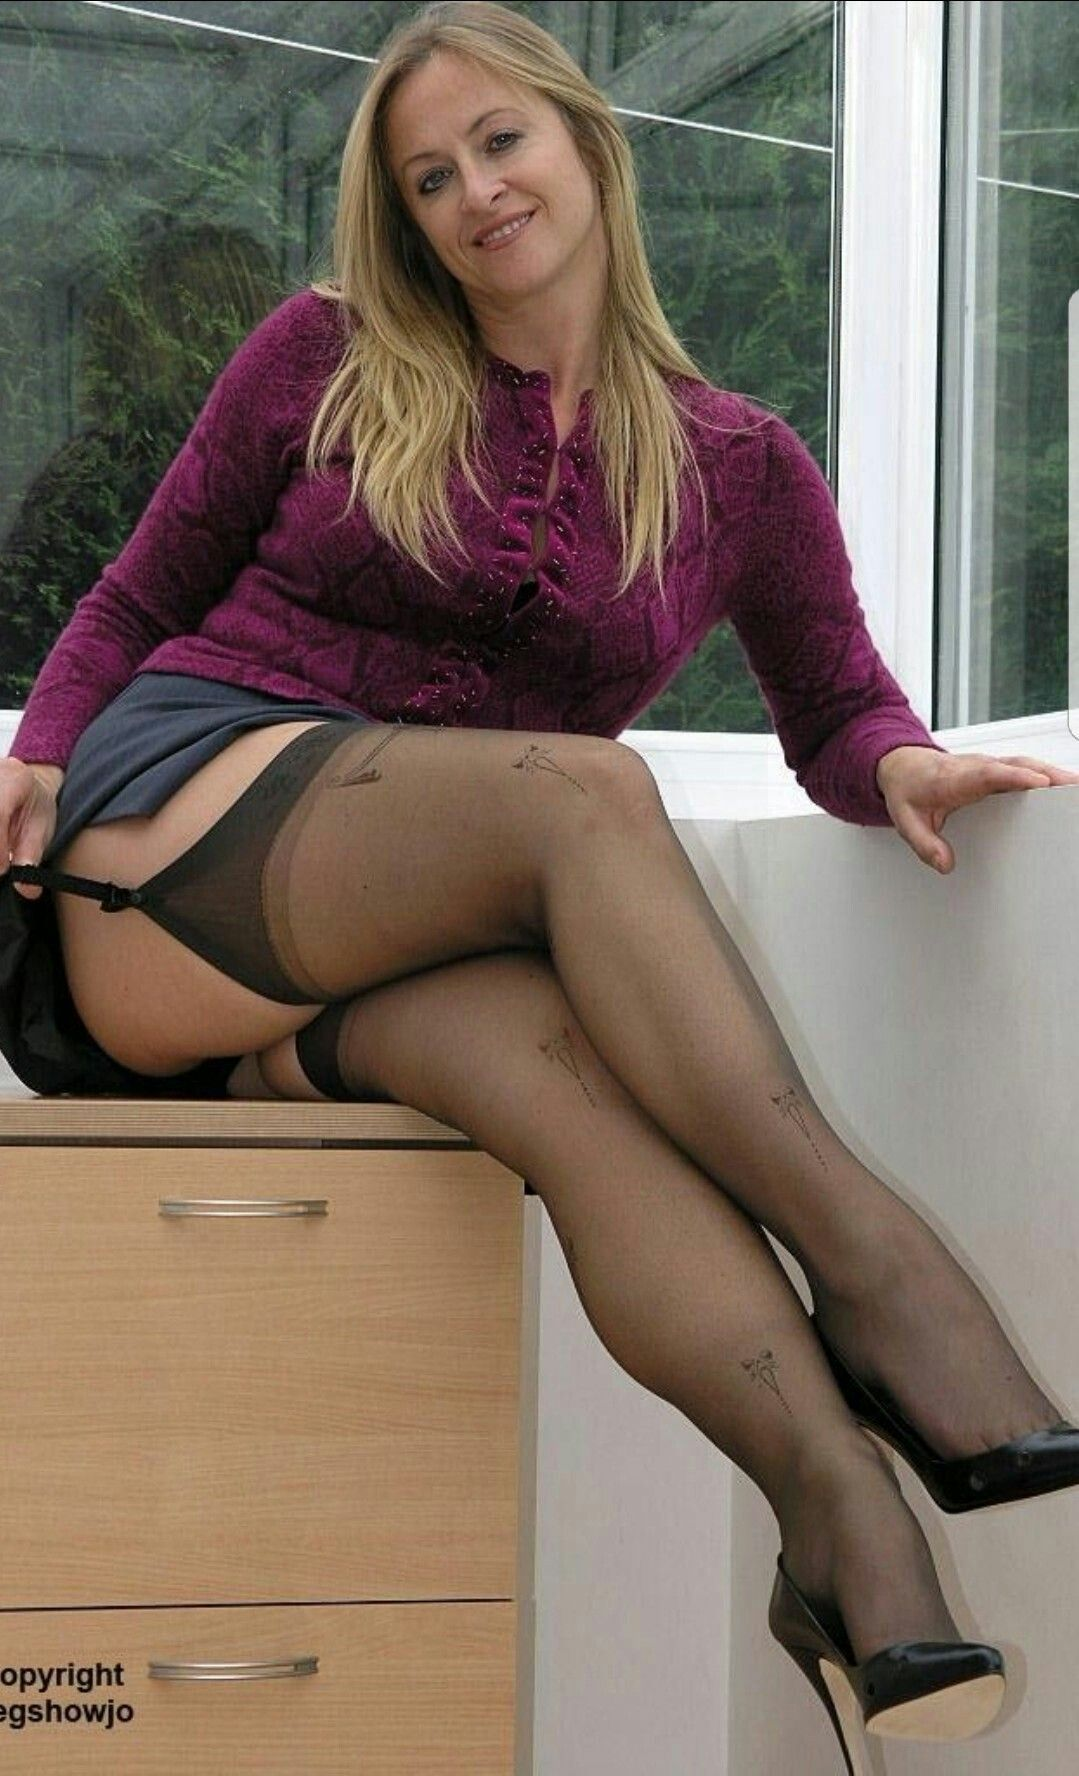 Plump mature thighs stockings pantyhose remarkable topic